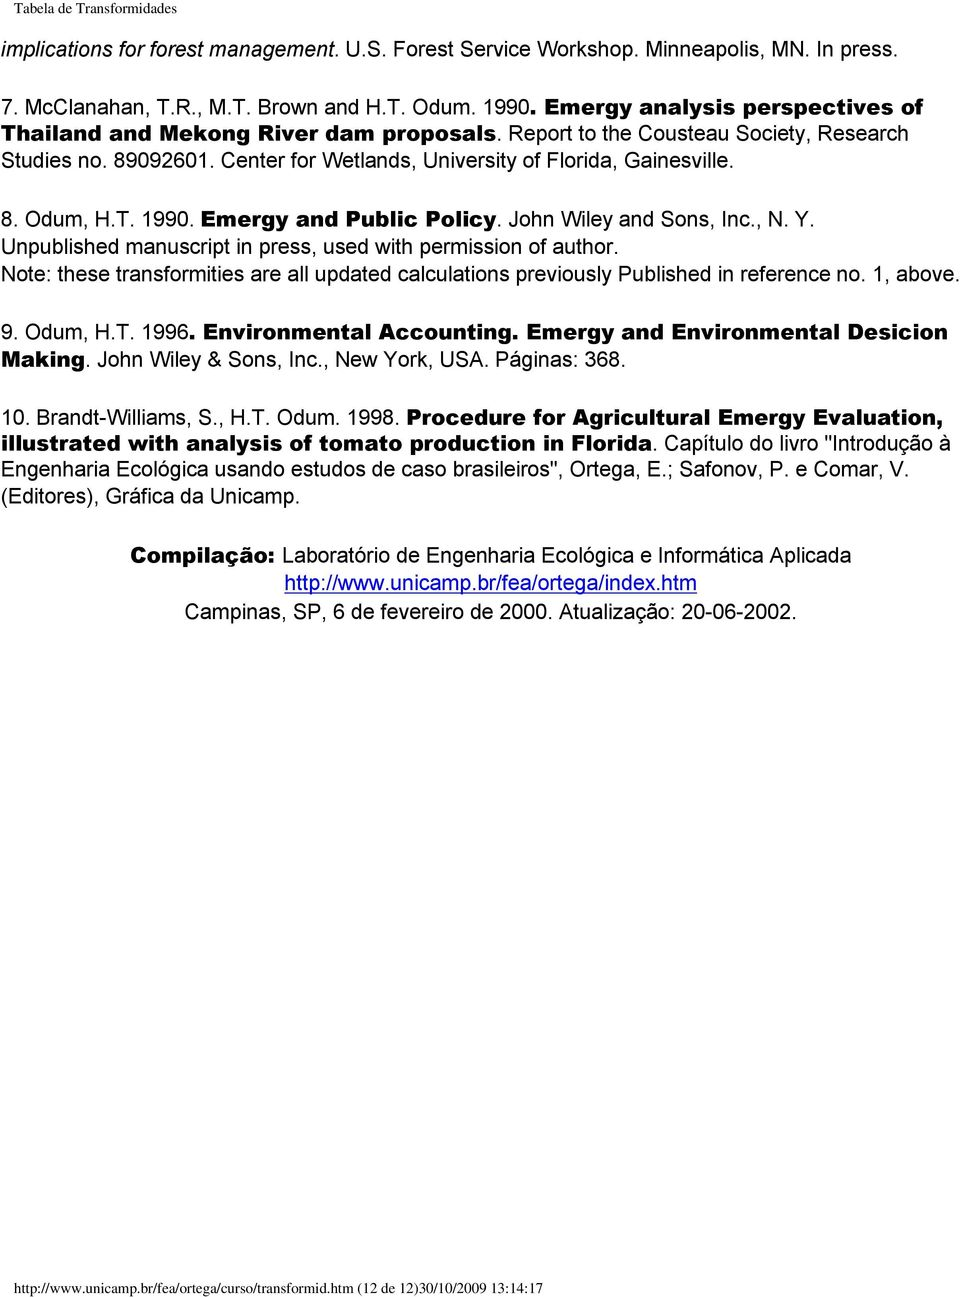 T. 1990. Emergy and Public Policy. John Wiley and Sons, Inc., N. Y. Unpublished manuscript in press, used with permission of author.